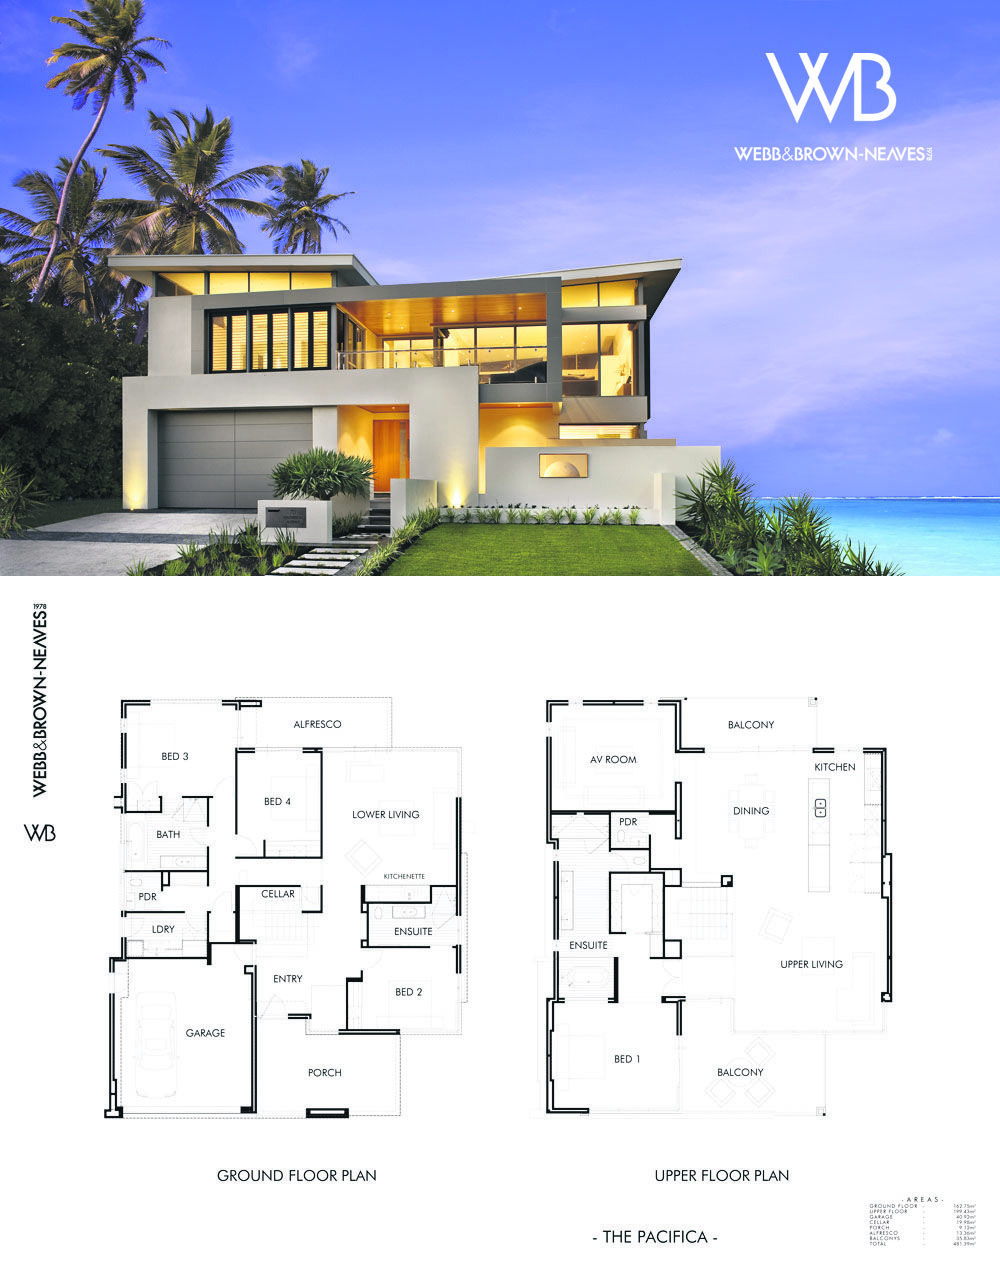 Beach Homes Designs and Plans Inspirational the Pacifica by Webb and Brown Neaves See It at 70